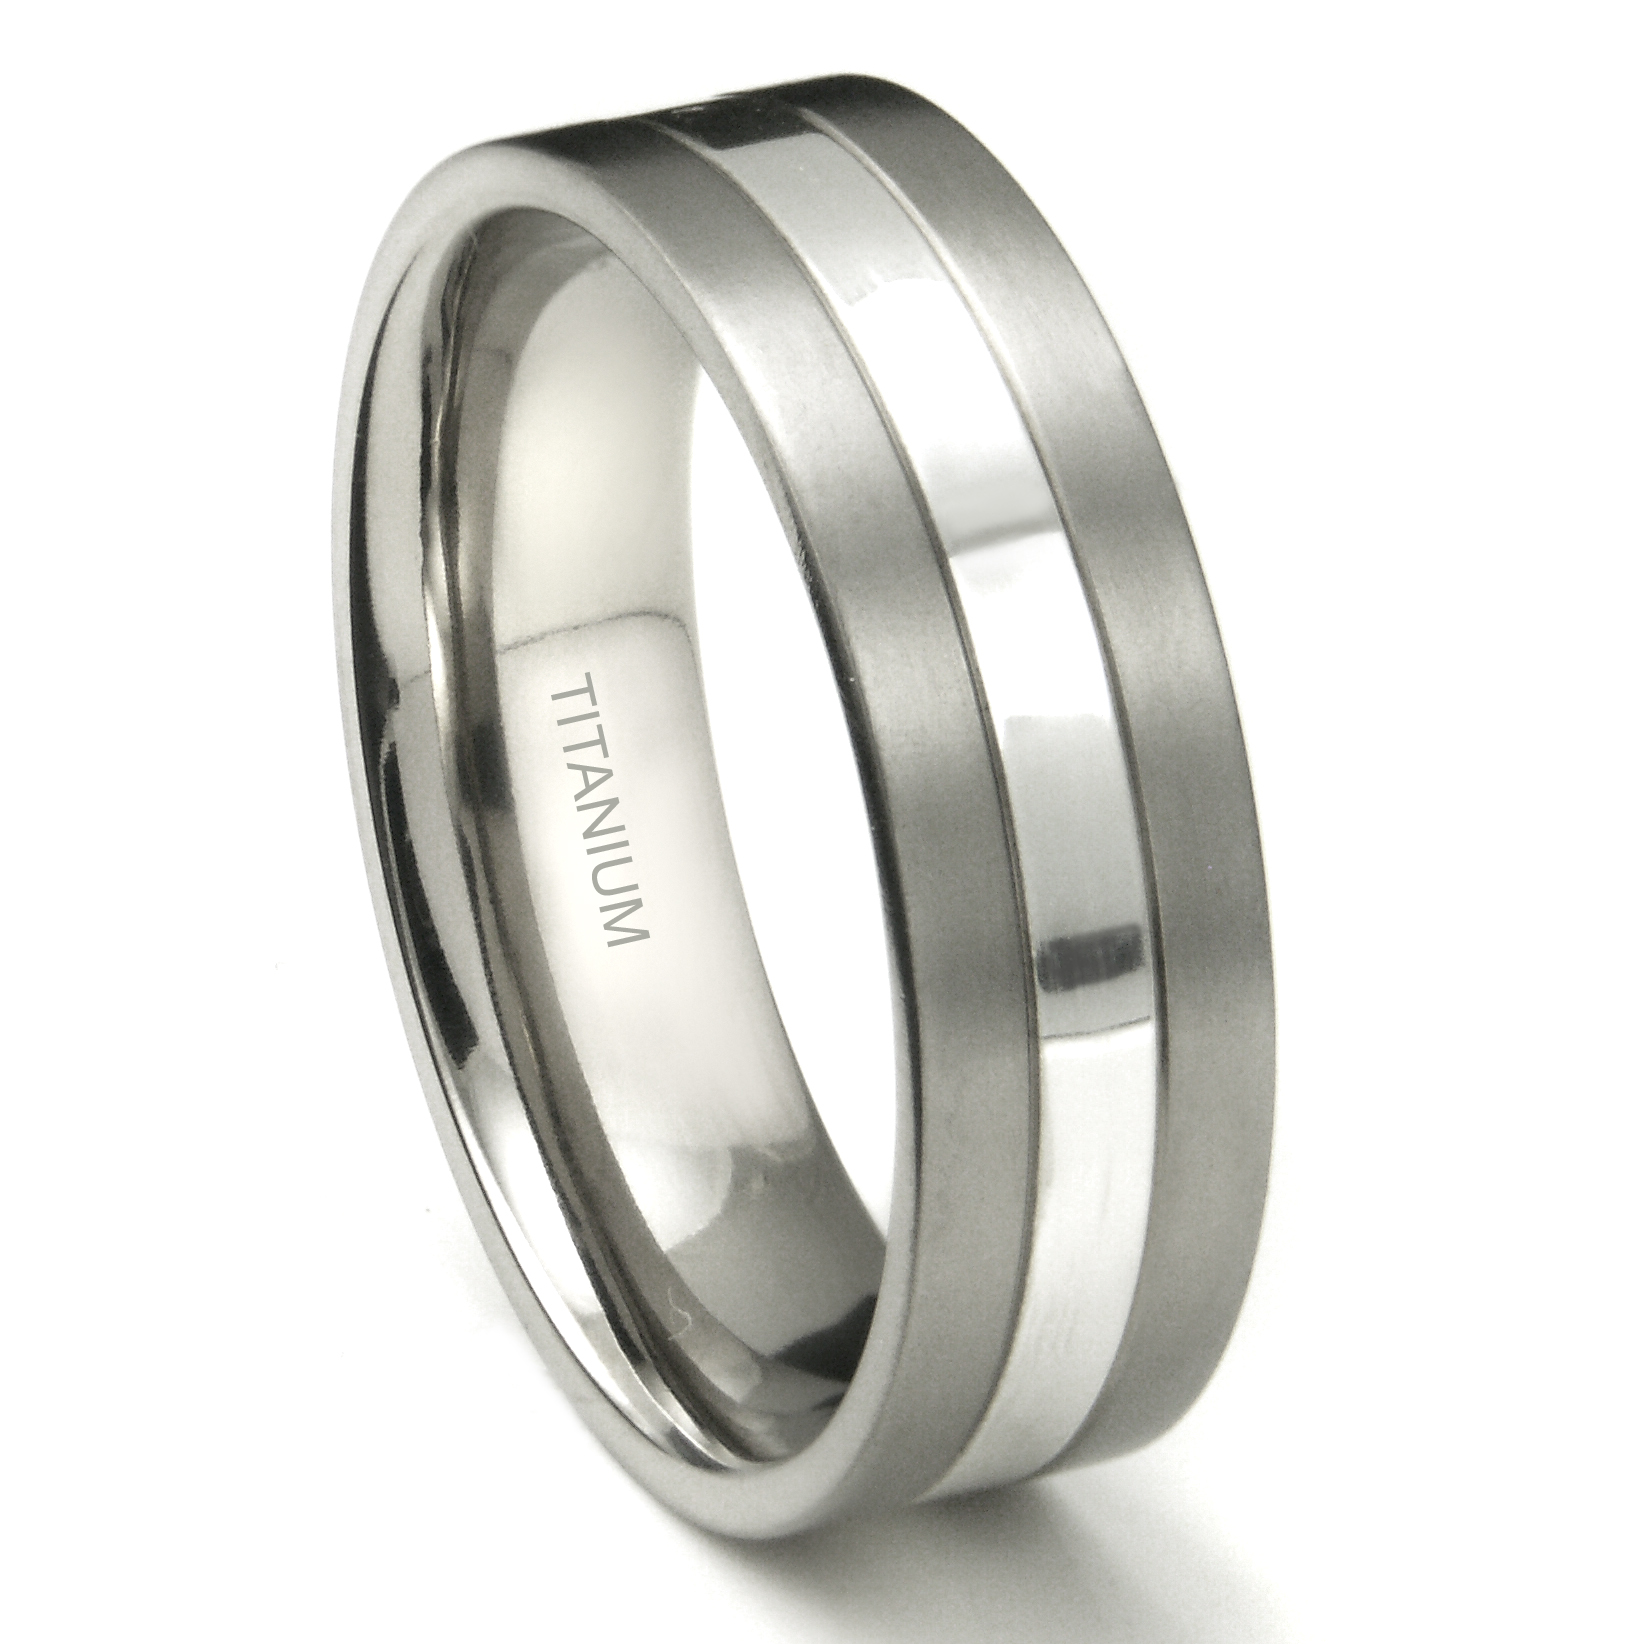 com zoom this rings mqxqwmn for go wedding season titanium styleskier